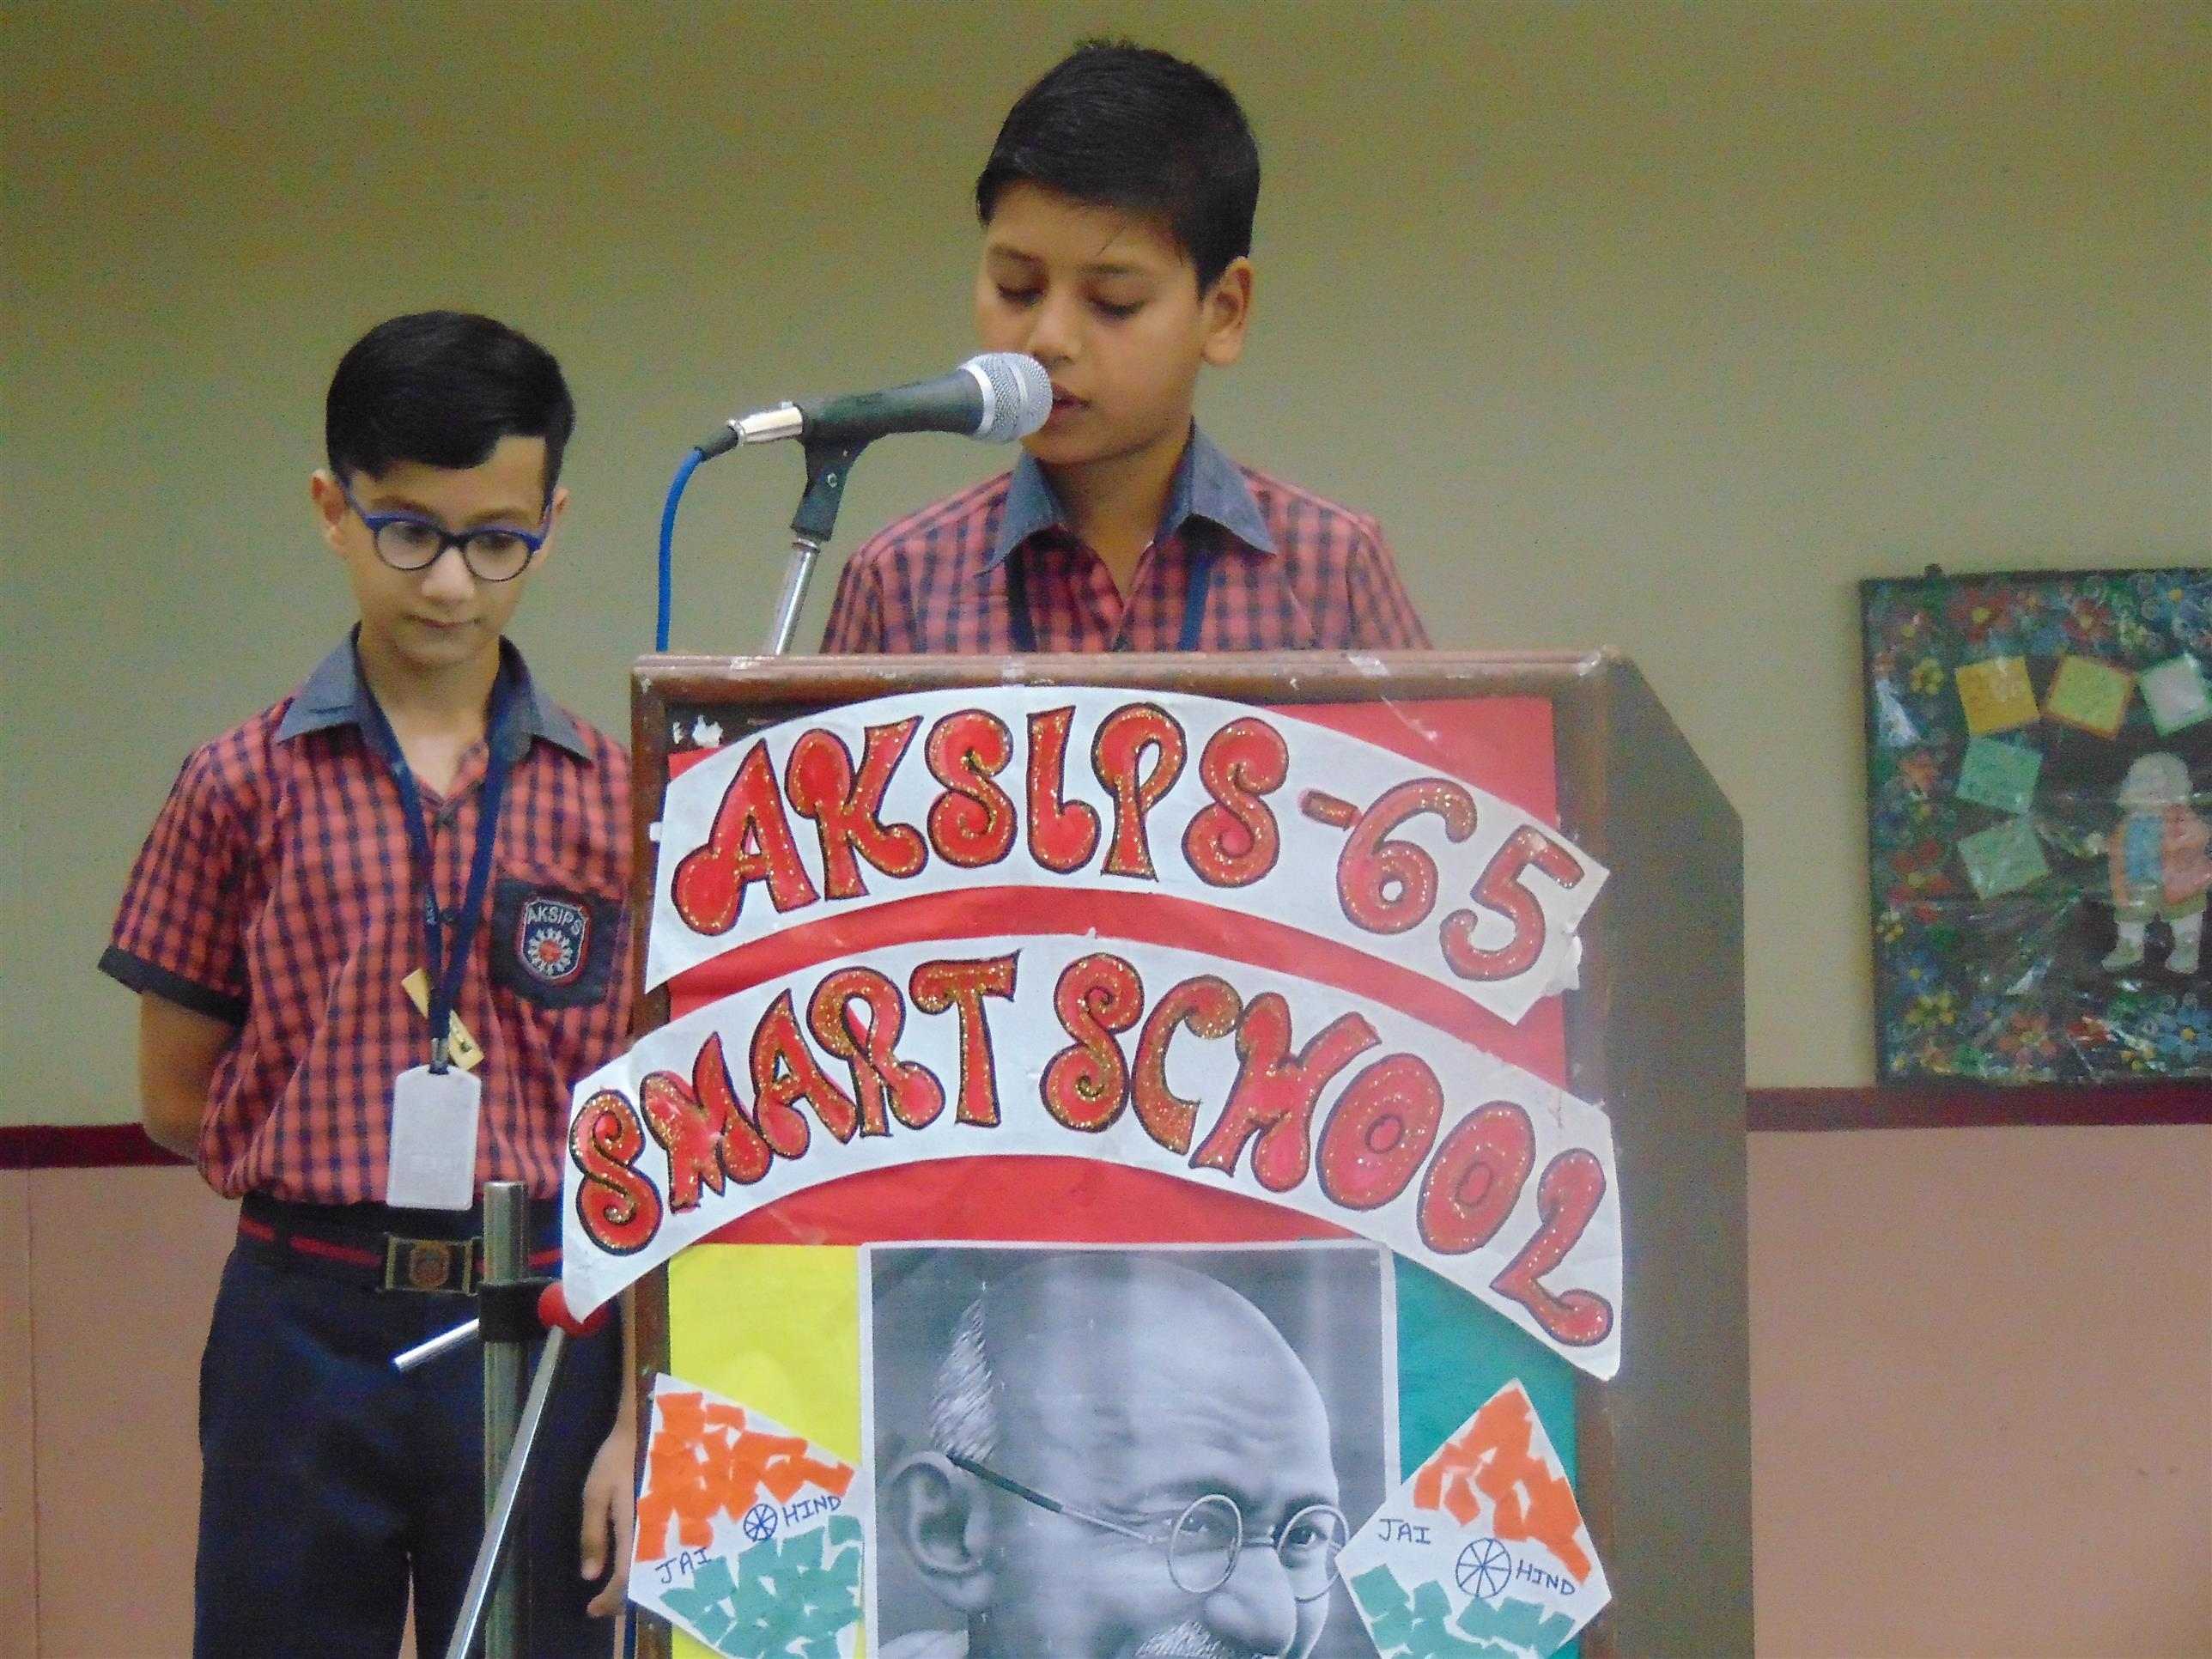 Special assembly organised to commemorate Gandhi Jayanti | AKSIPS 65 Chandigarh